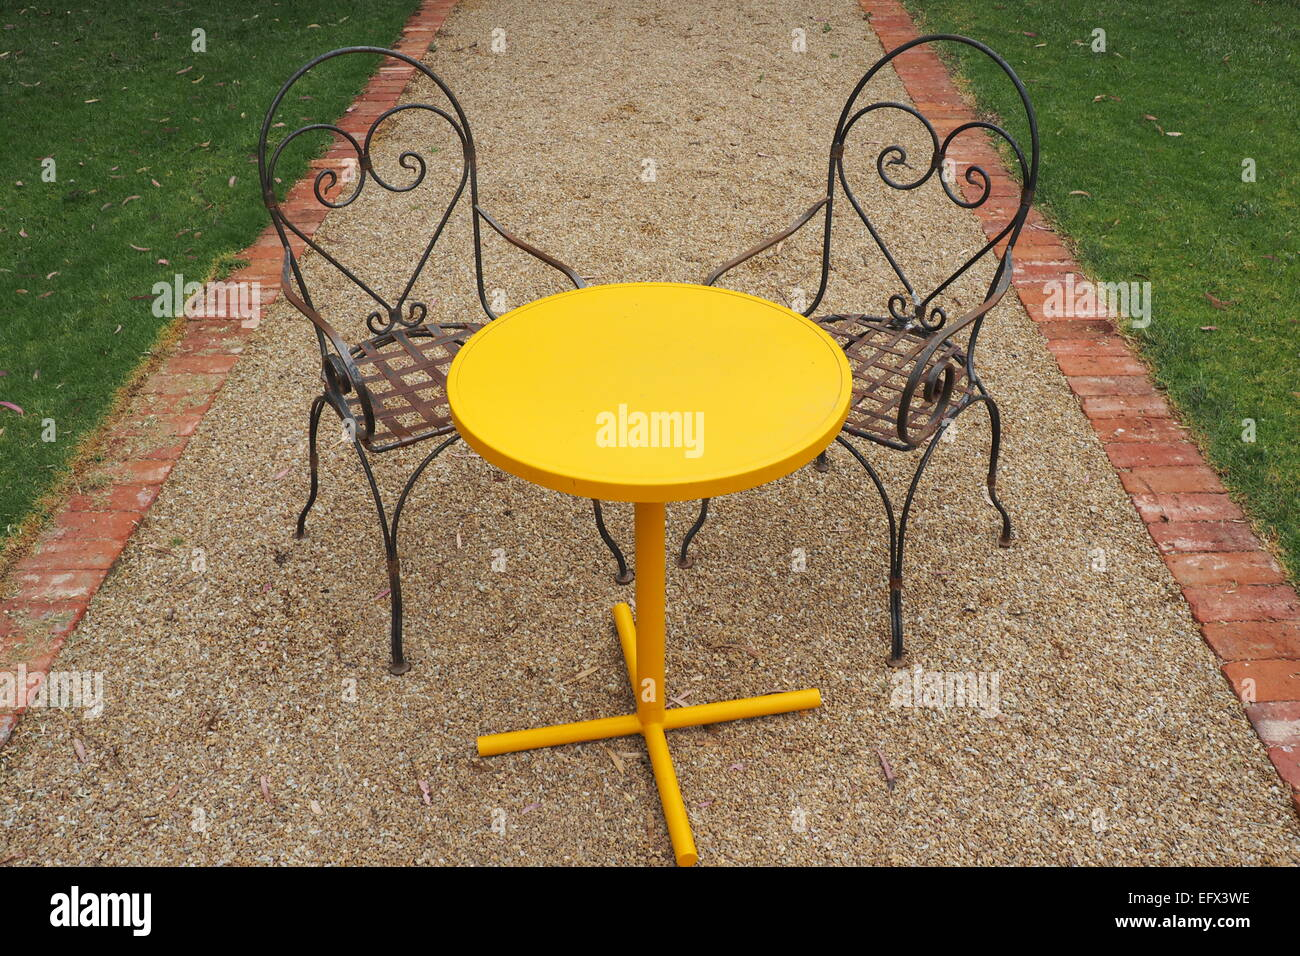 A round yellow table and two metal chairs in a garden Stock Photo